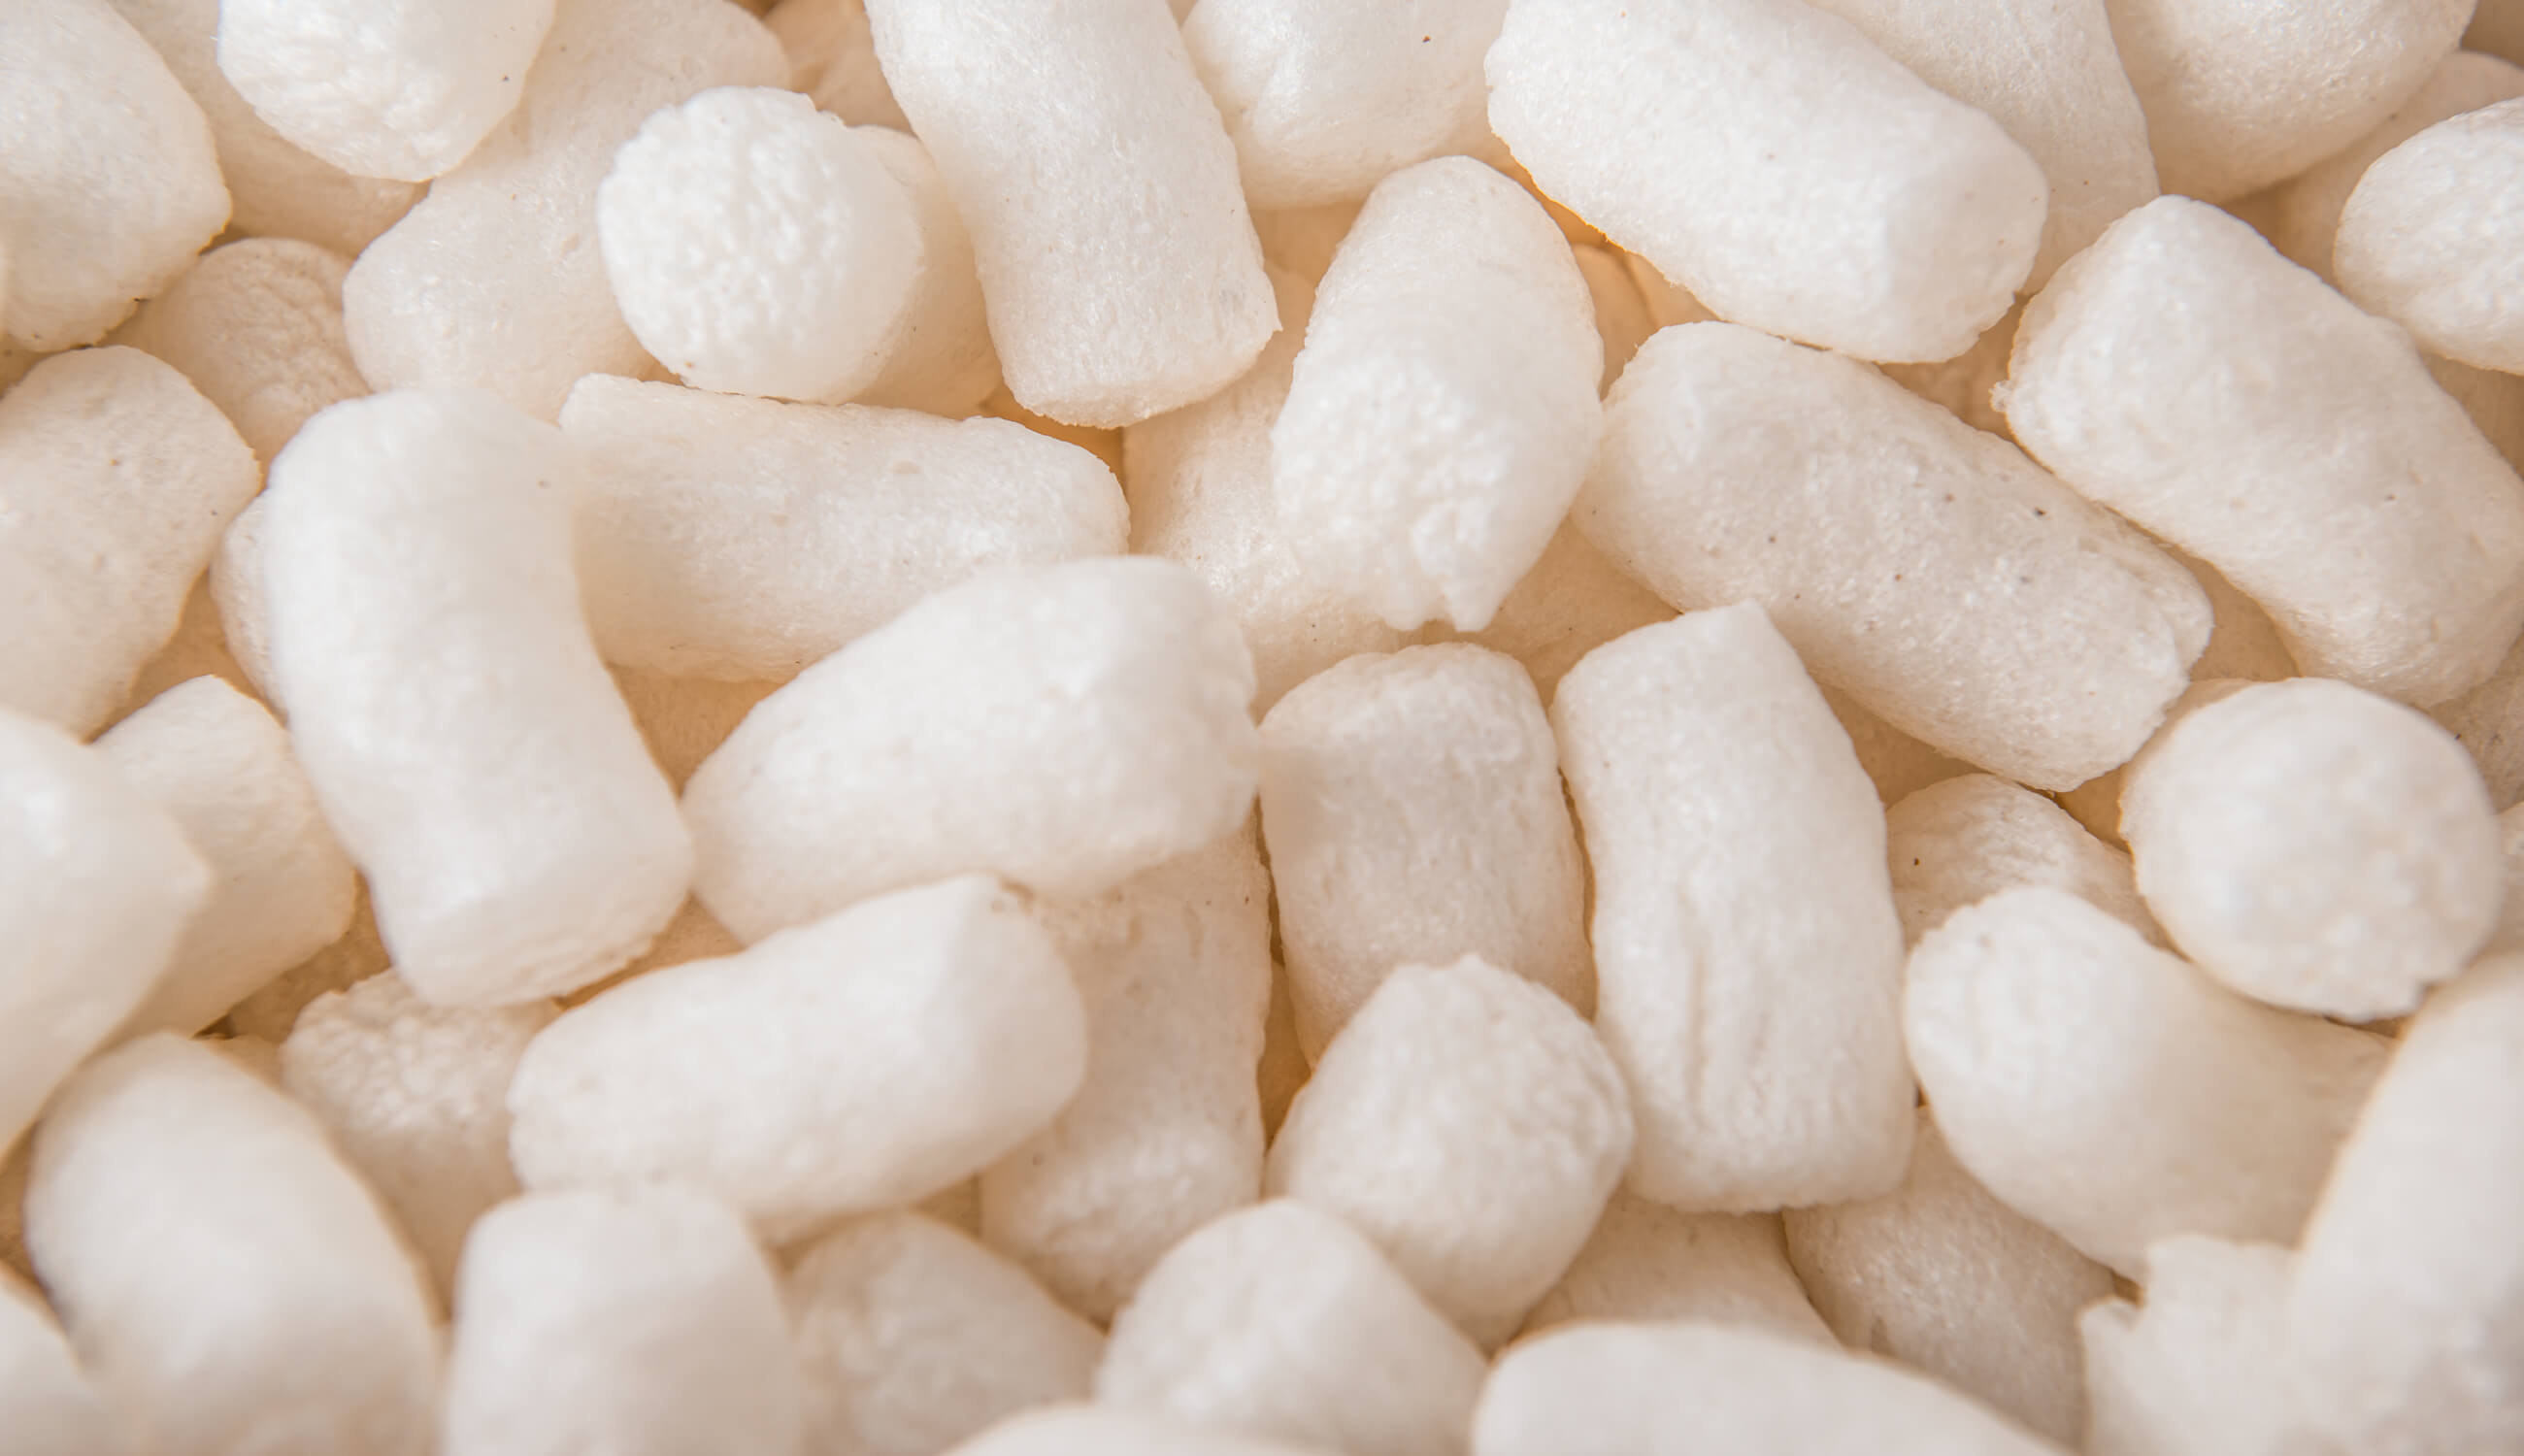 Bio Degradeable Packing Peanuts